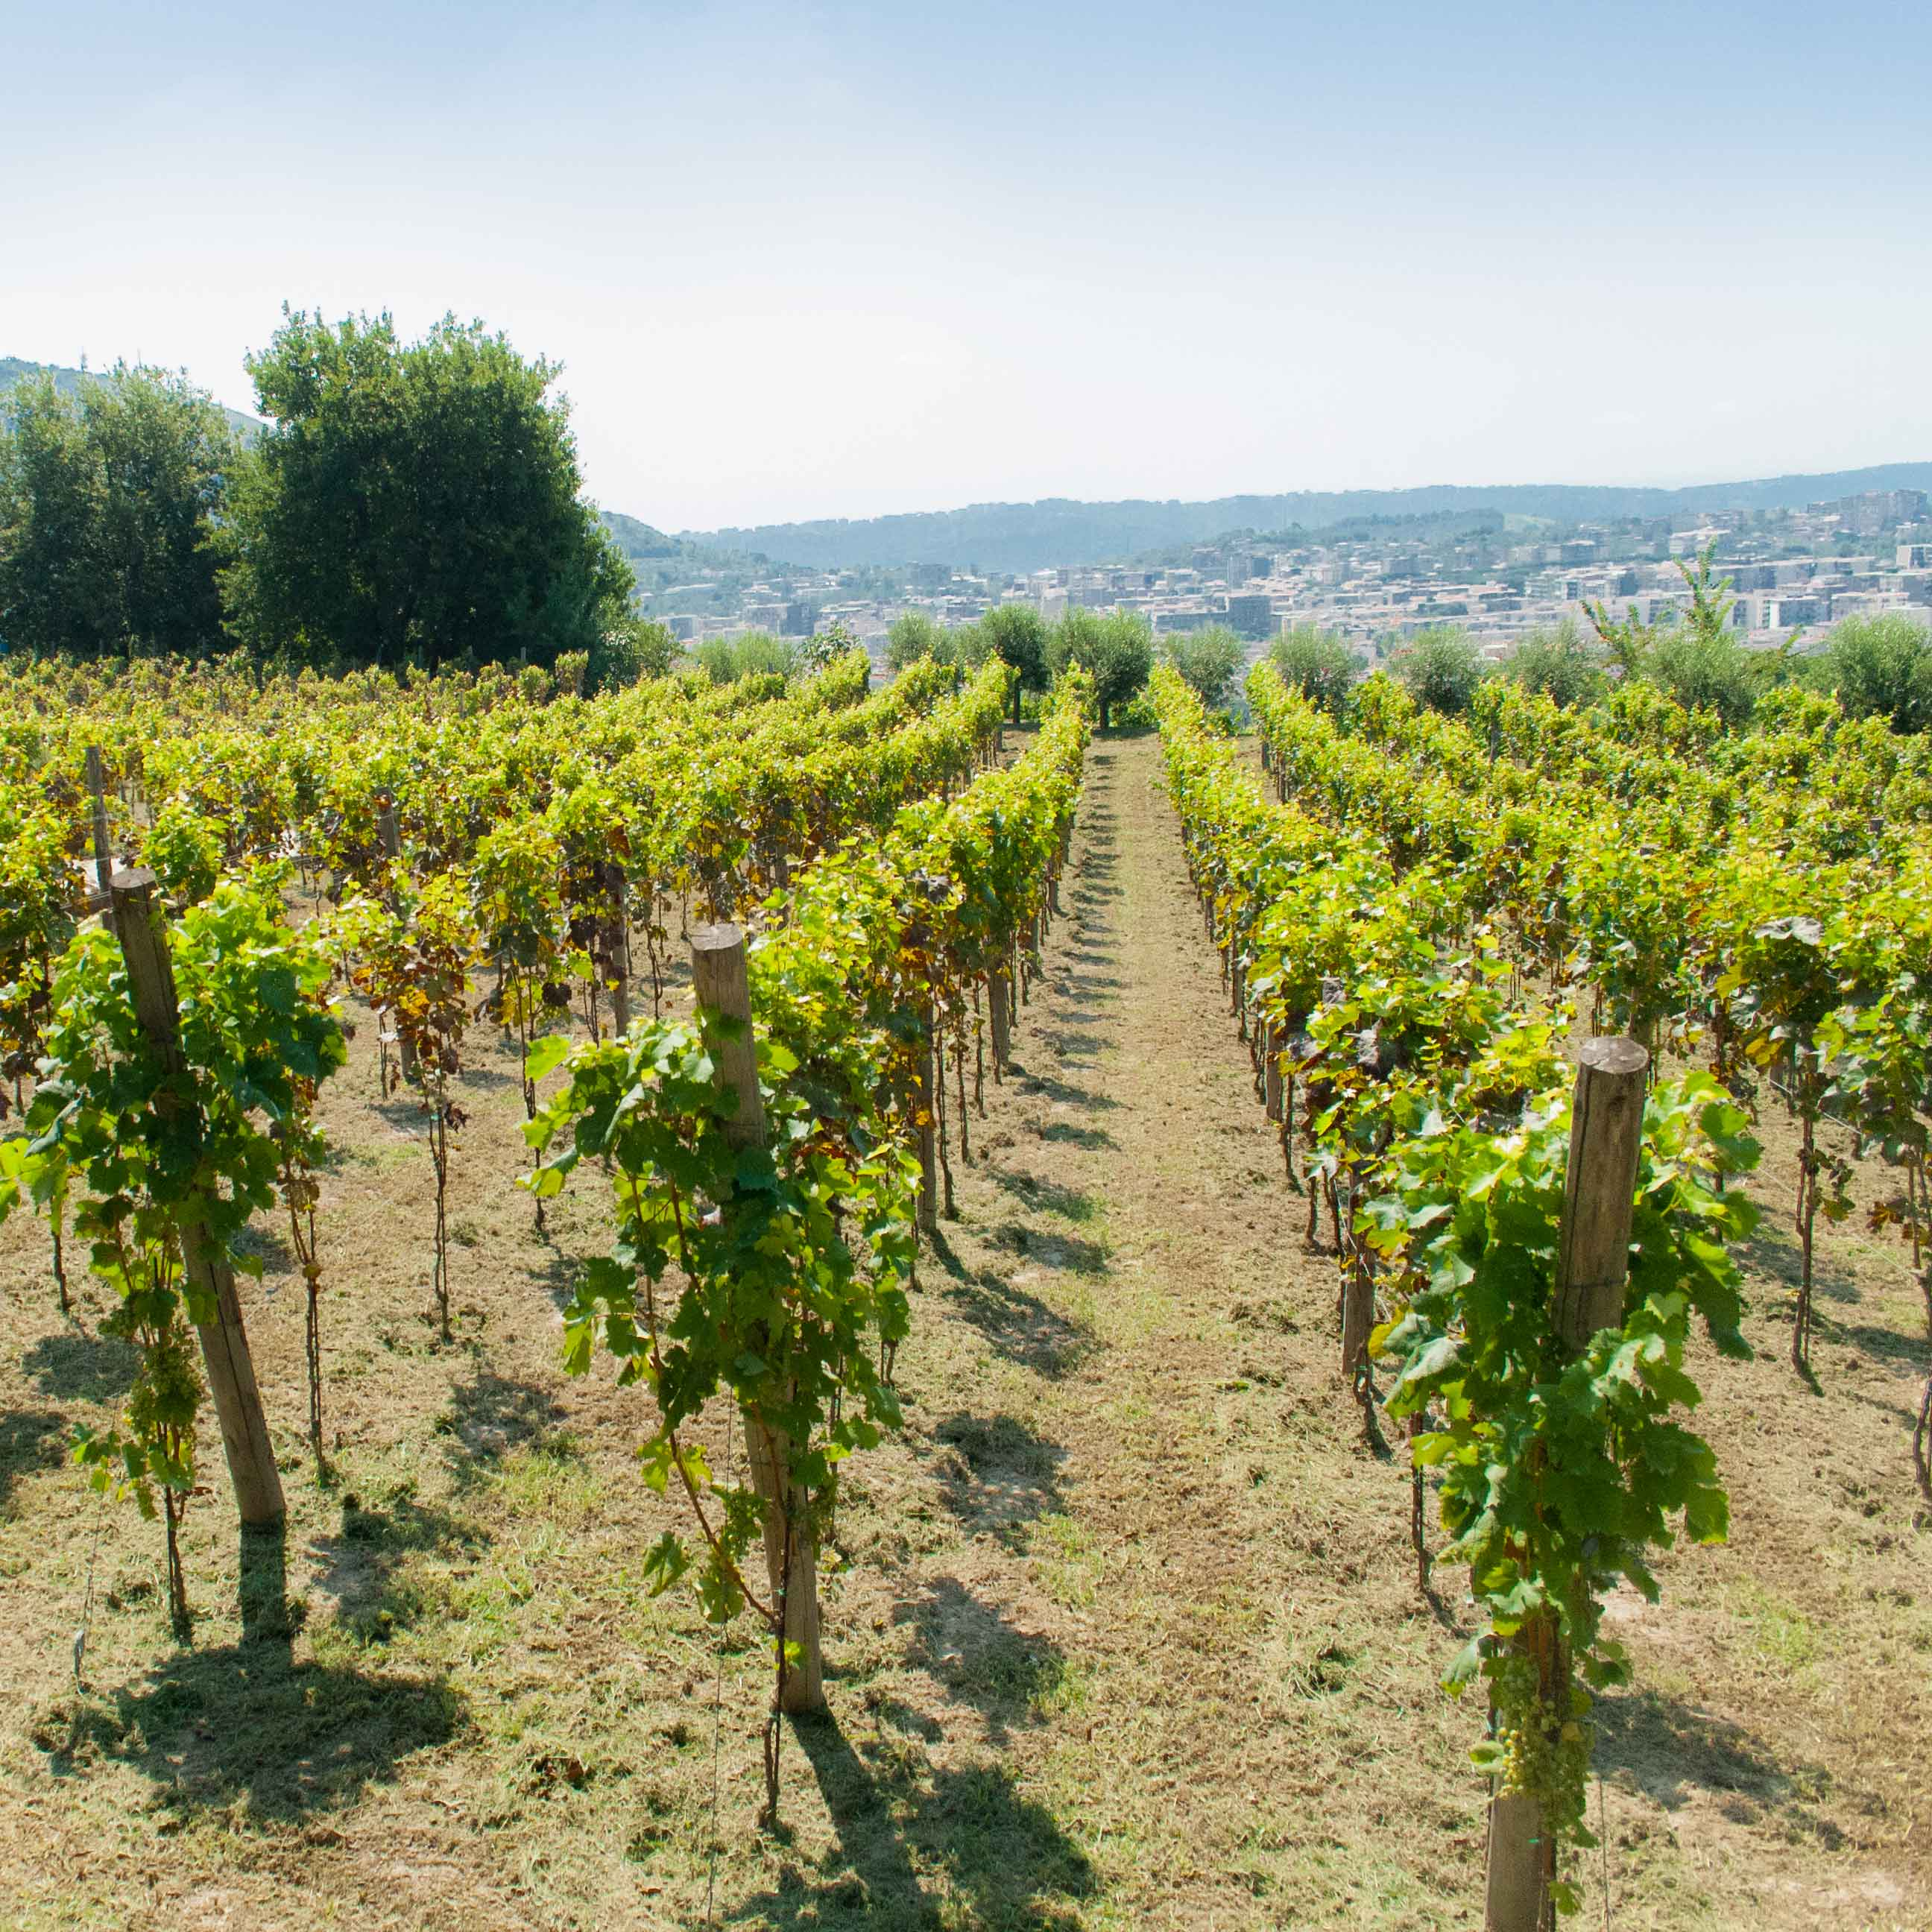 Phlegraean Fields - Vigna Iossa vineyard of Cantine Astroni